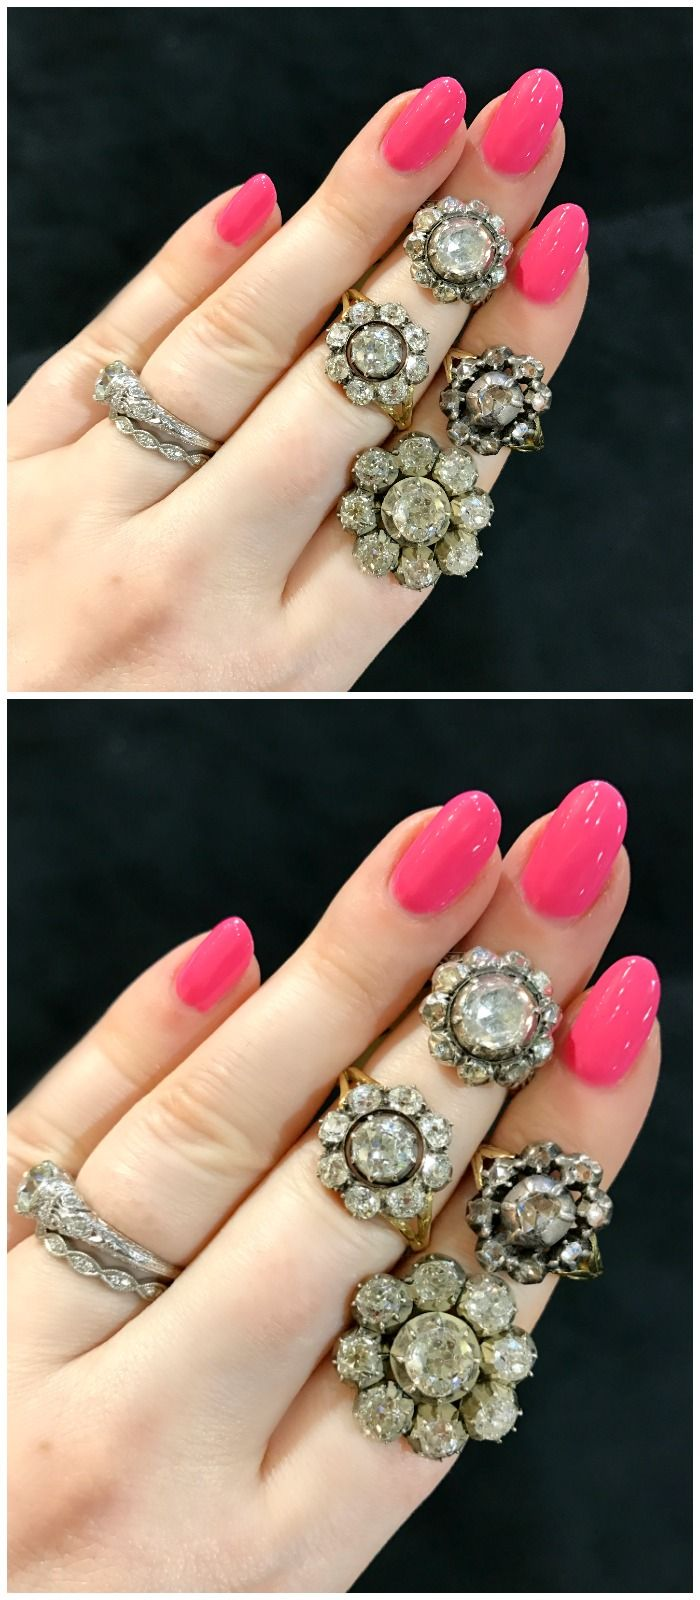 A Cluster Of Antique Cluster Rings From Dk Bressler Spotted At The  Original Miami Antique